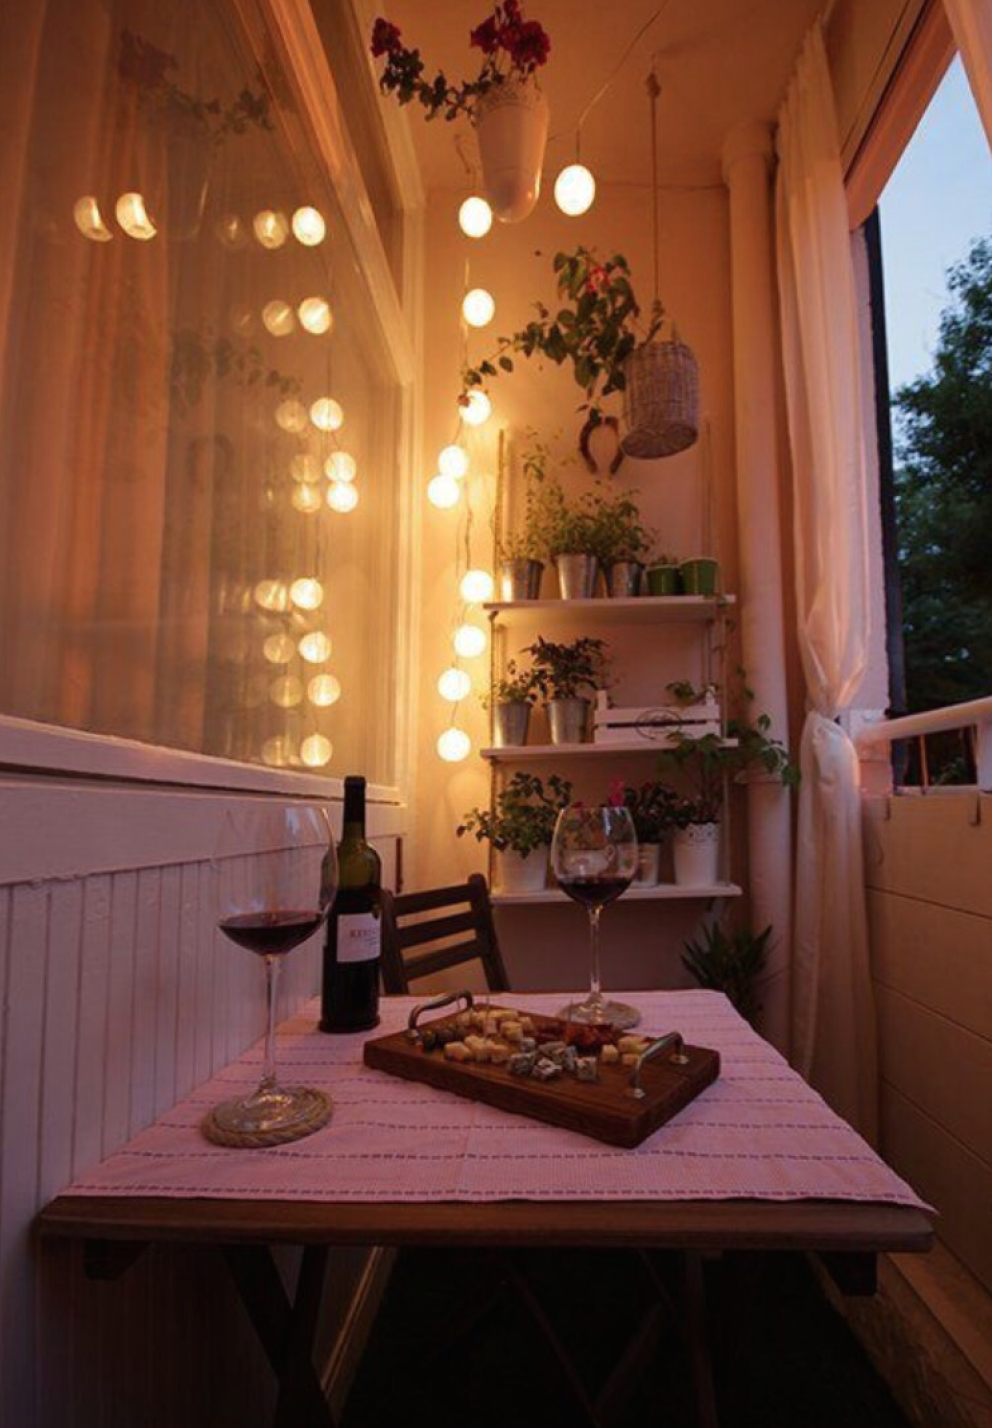 Apartment balcony ideas pictures to pin on pinterest - Someday We Will Have Our Own Balcony And It Will Be Teeny Tiny And We Can Redo It Before After The Teeny Tiny Balcony Total Makeover Decorating